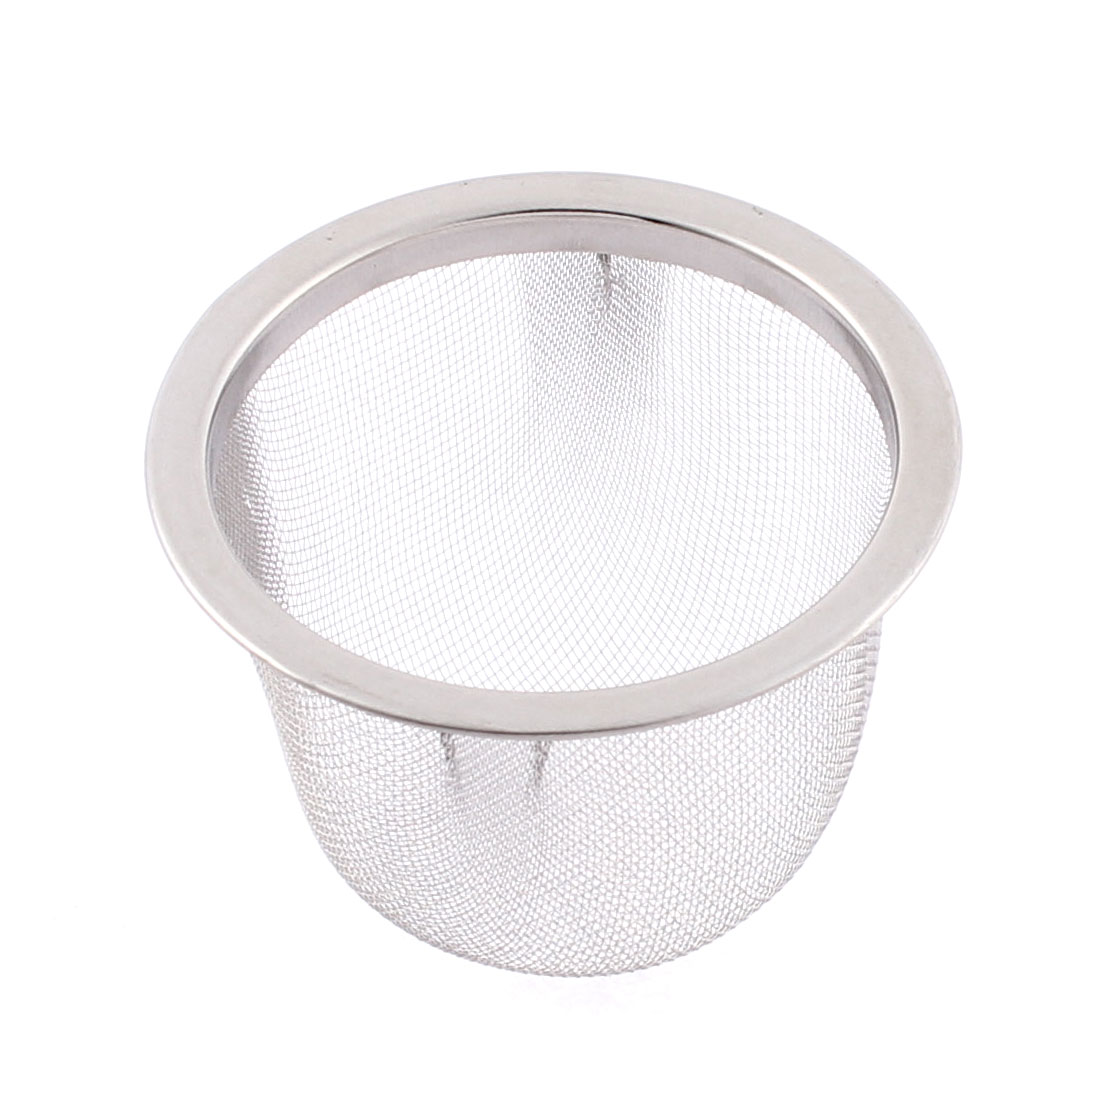 Home Stainless Steel Wire Mesh Tea Infuser Strainer Basket 63mm Dia